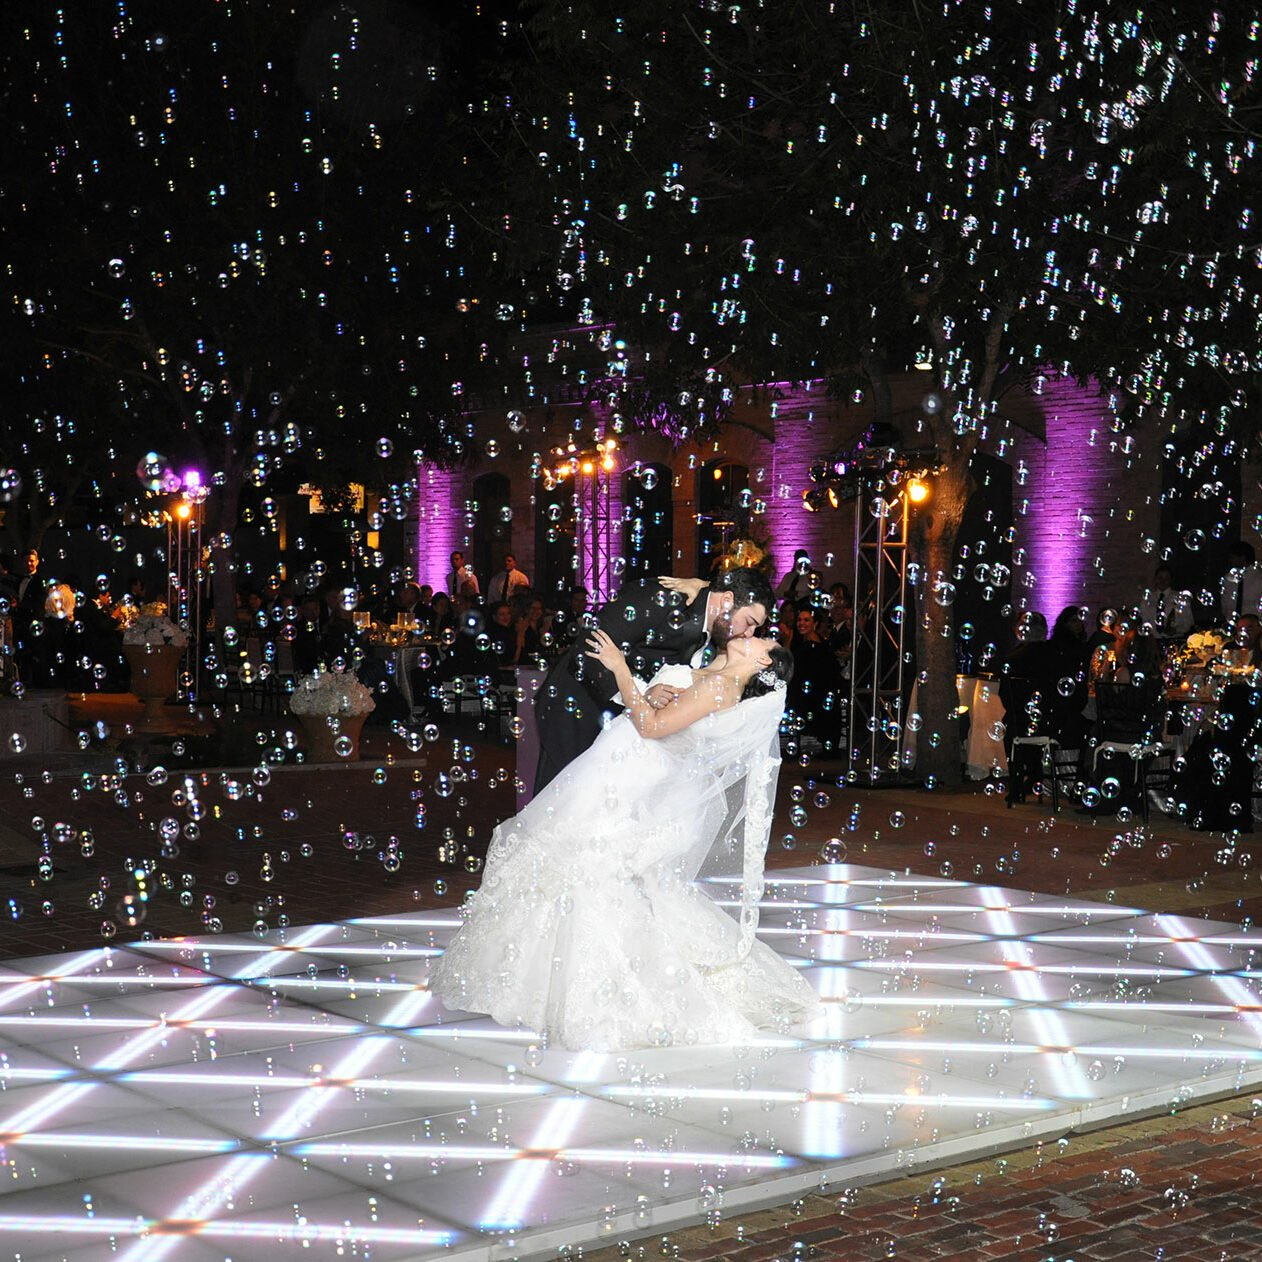 Event Ignition - SanAntonioWeddings.com